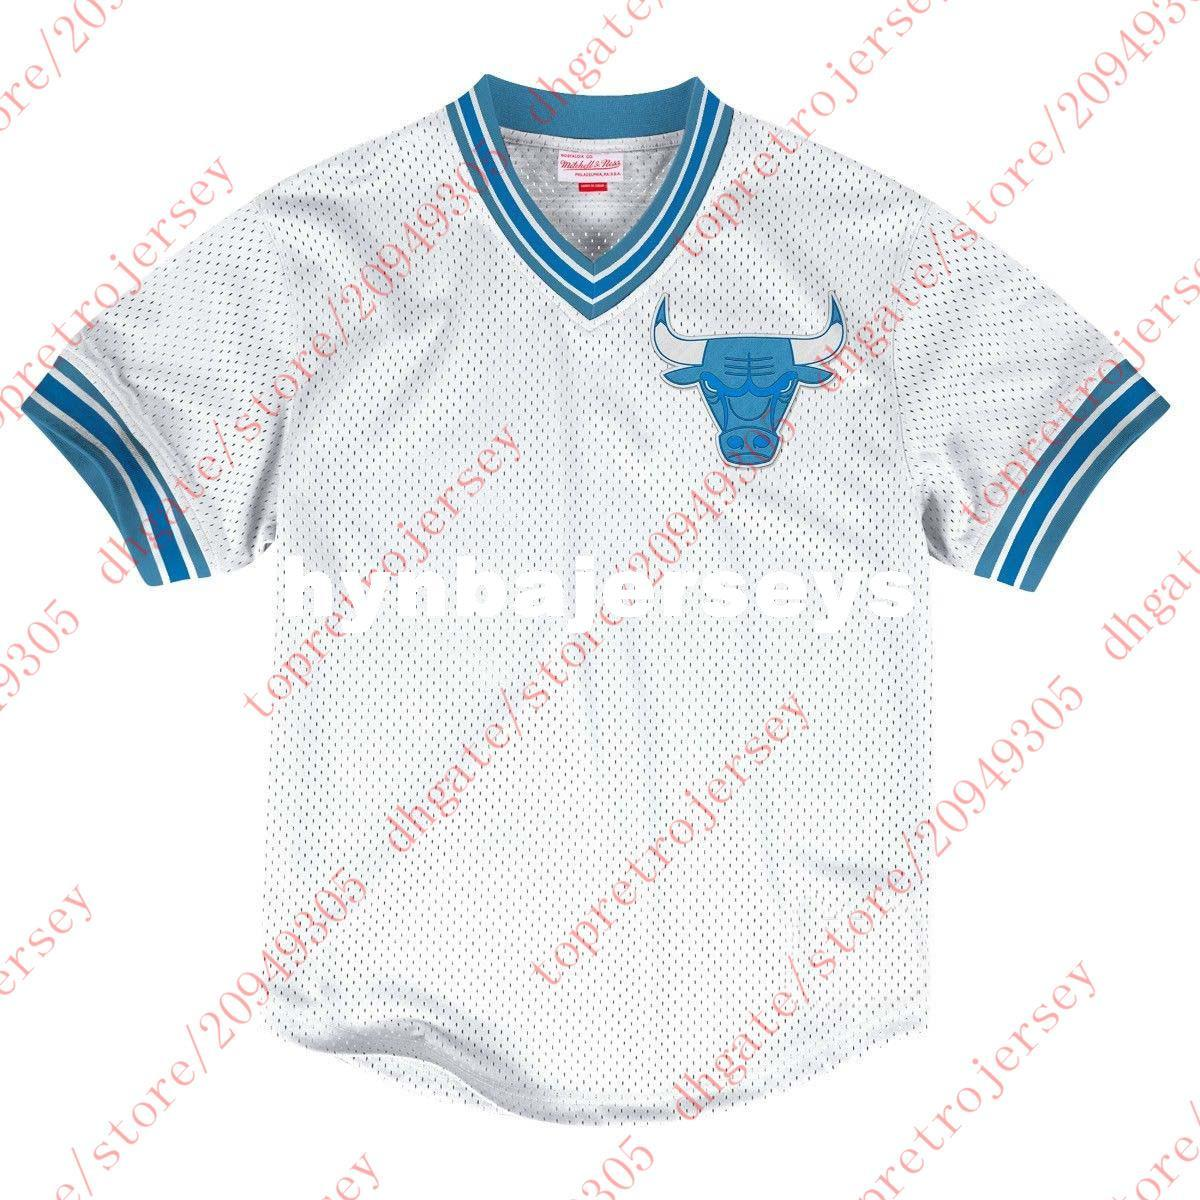 863348930 Cheap Custom Any Number Any Name Mitchell   Ness Top Mens Mesh V ...